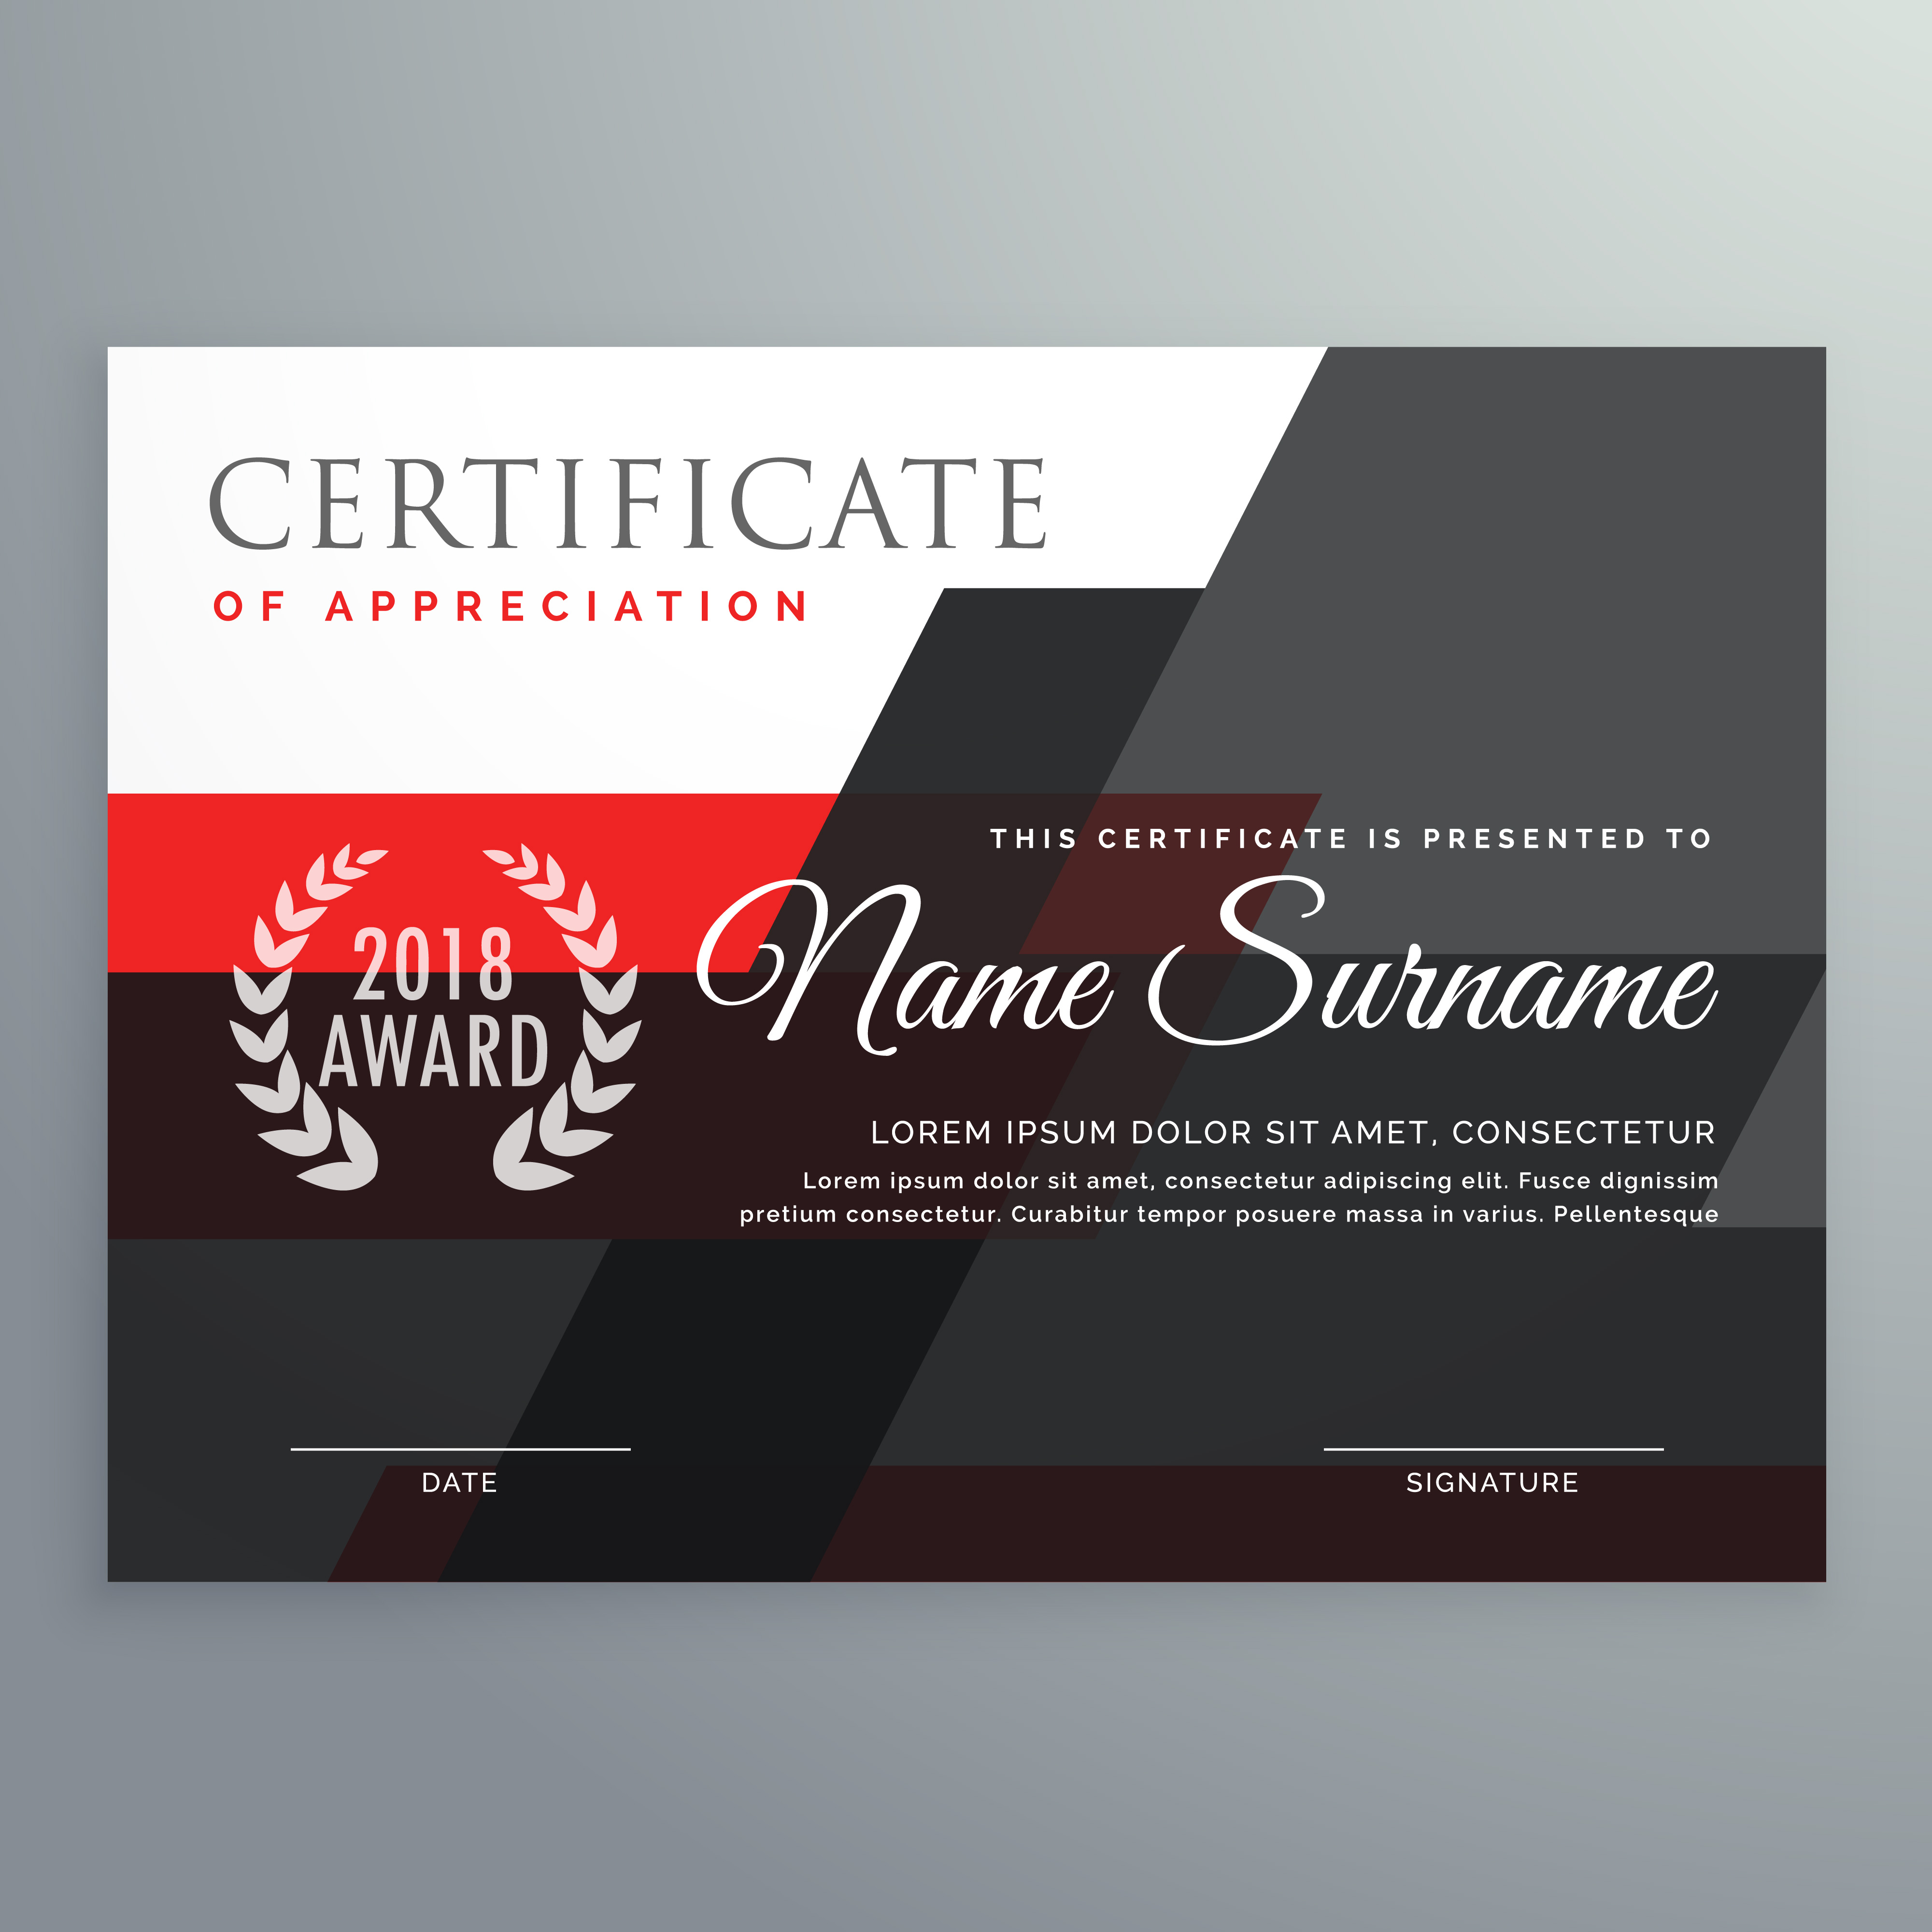 modern certificate template design with geometric red and